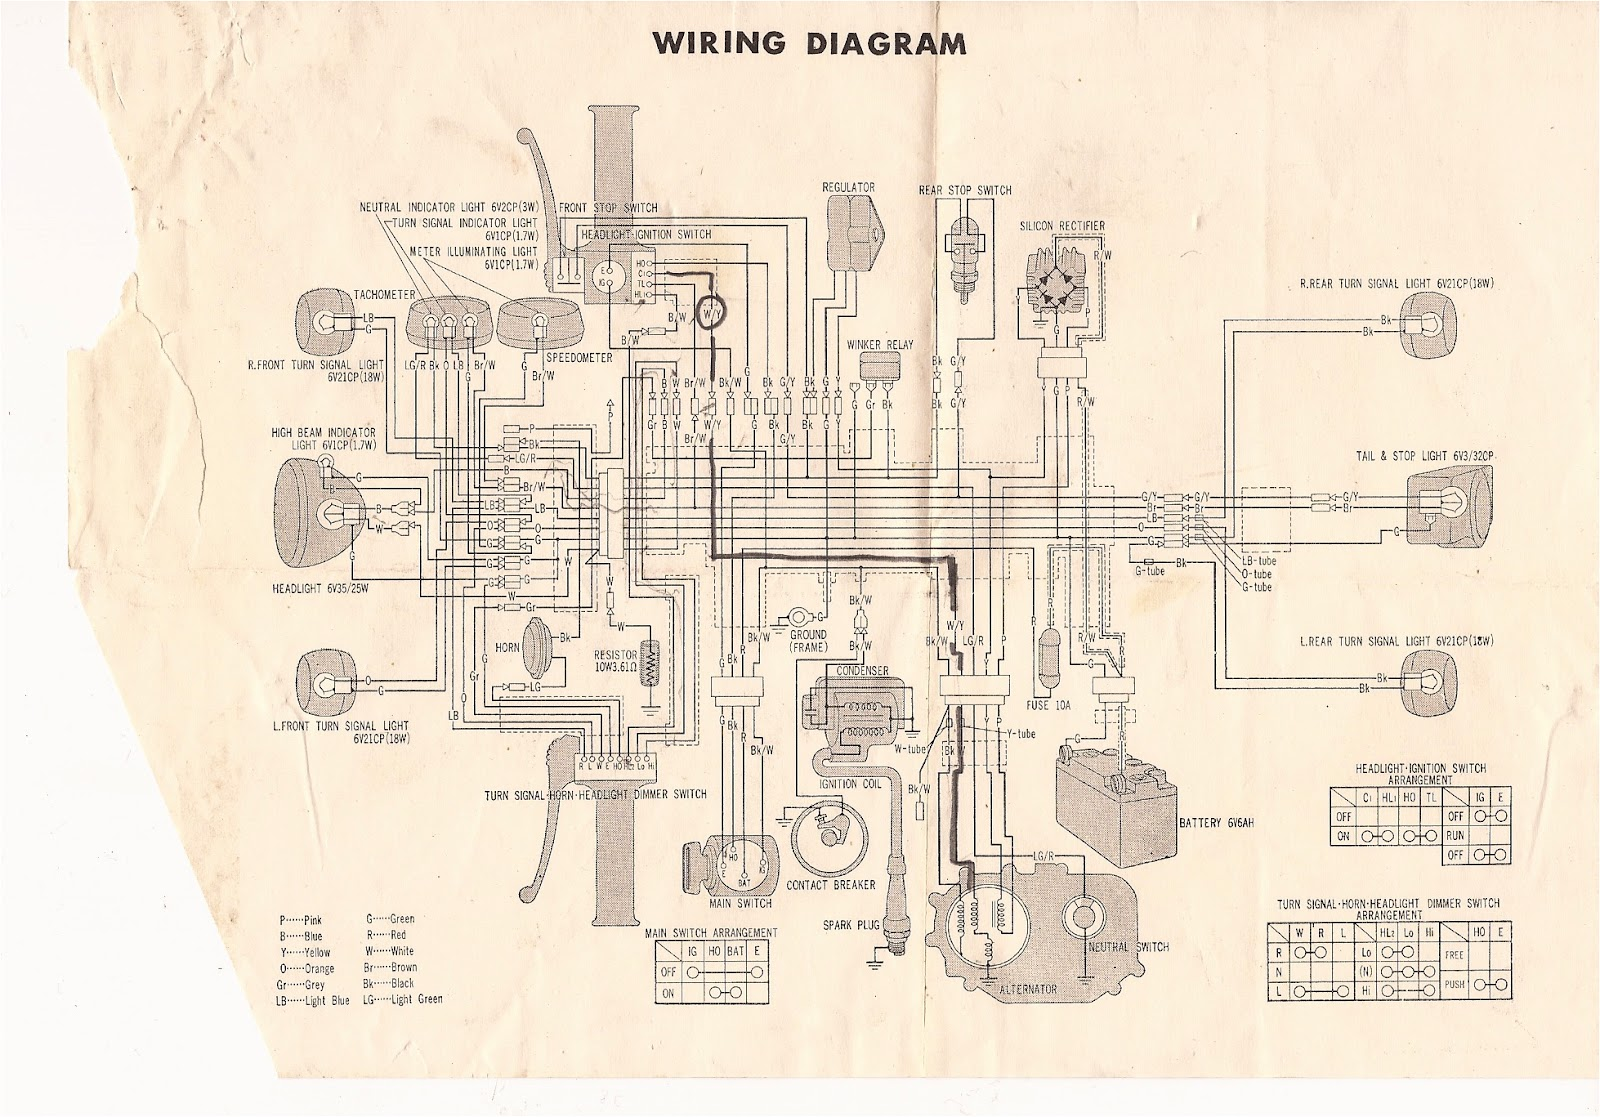 XL350+Wiring+diagram r4l may 2012 1975 honda cb360 wiring diagram at couponss.co